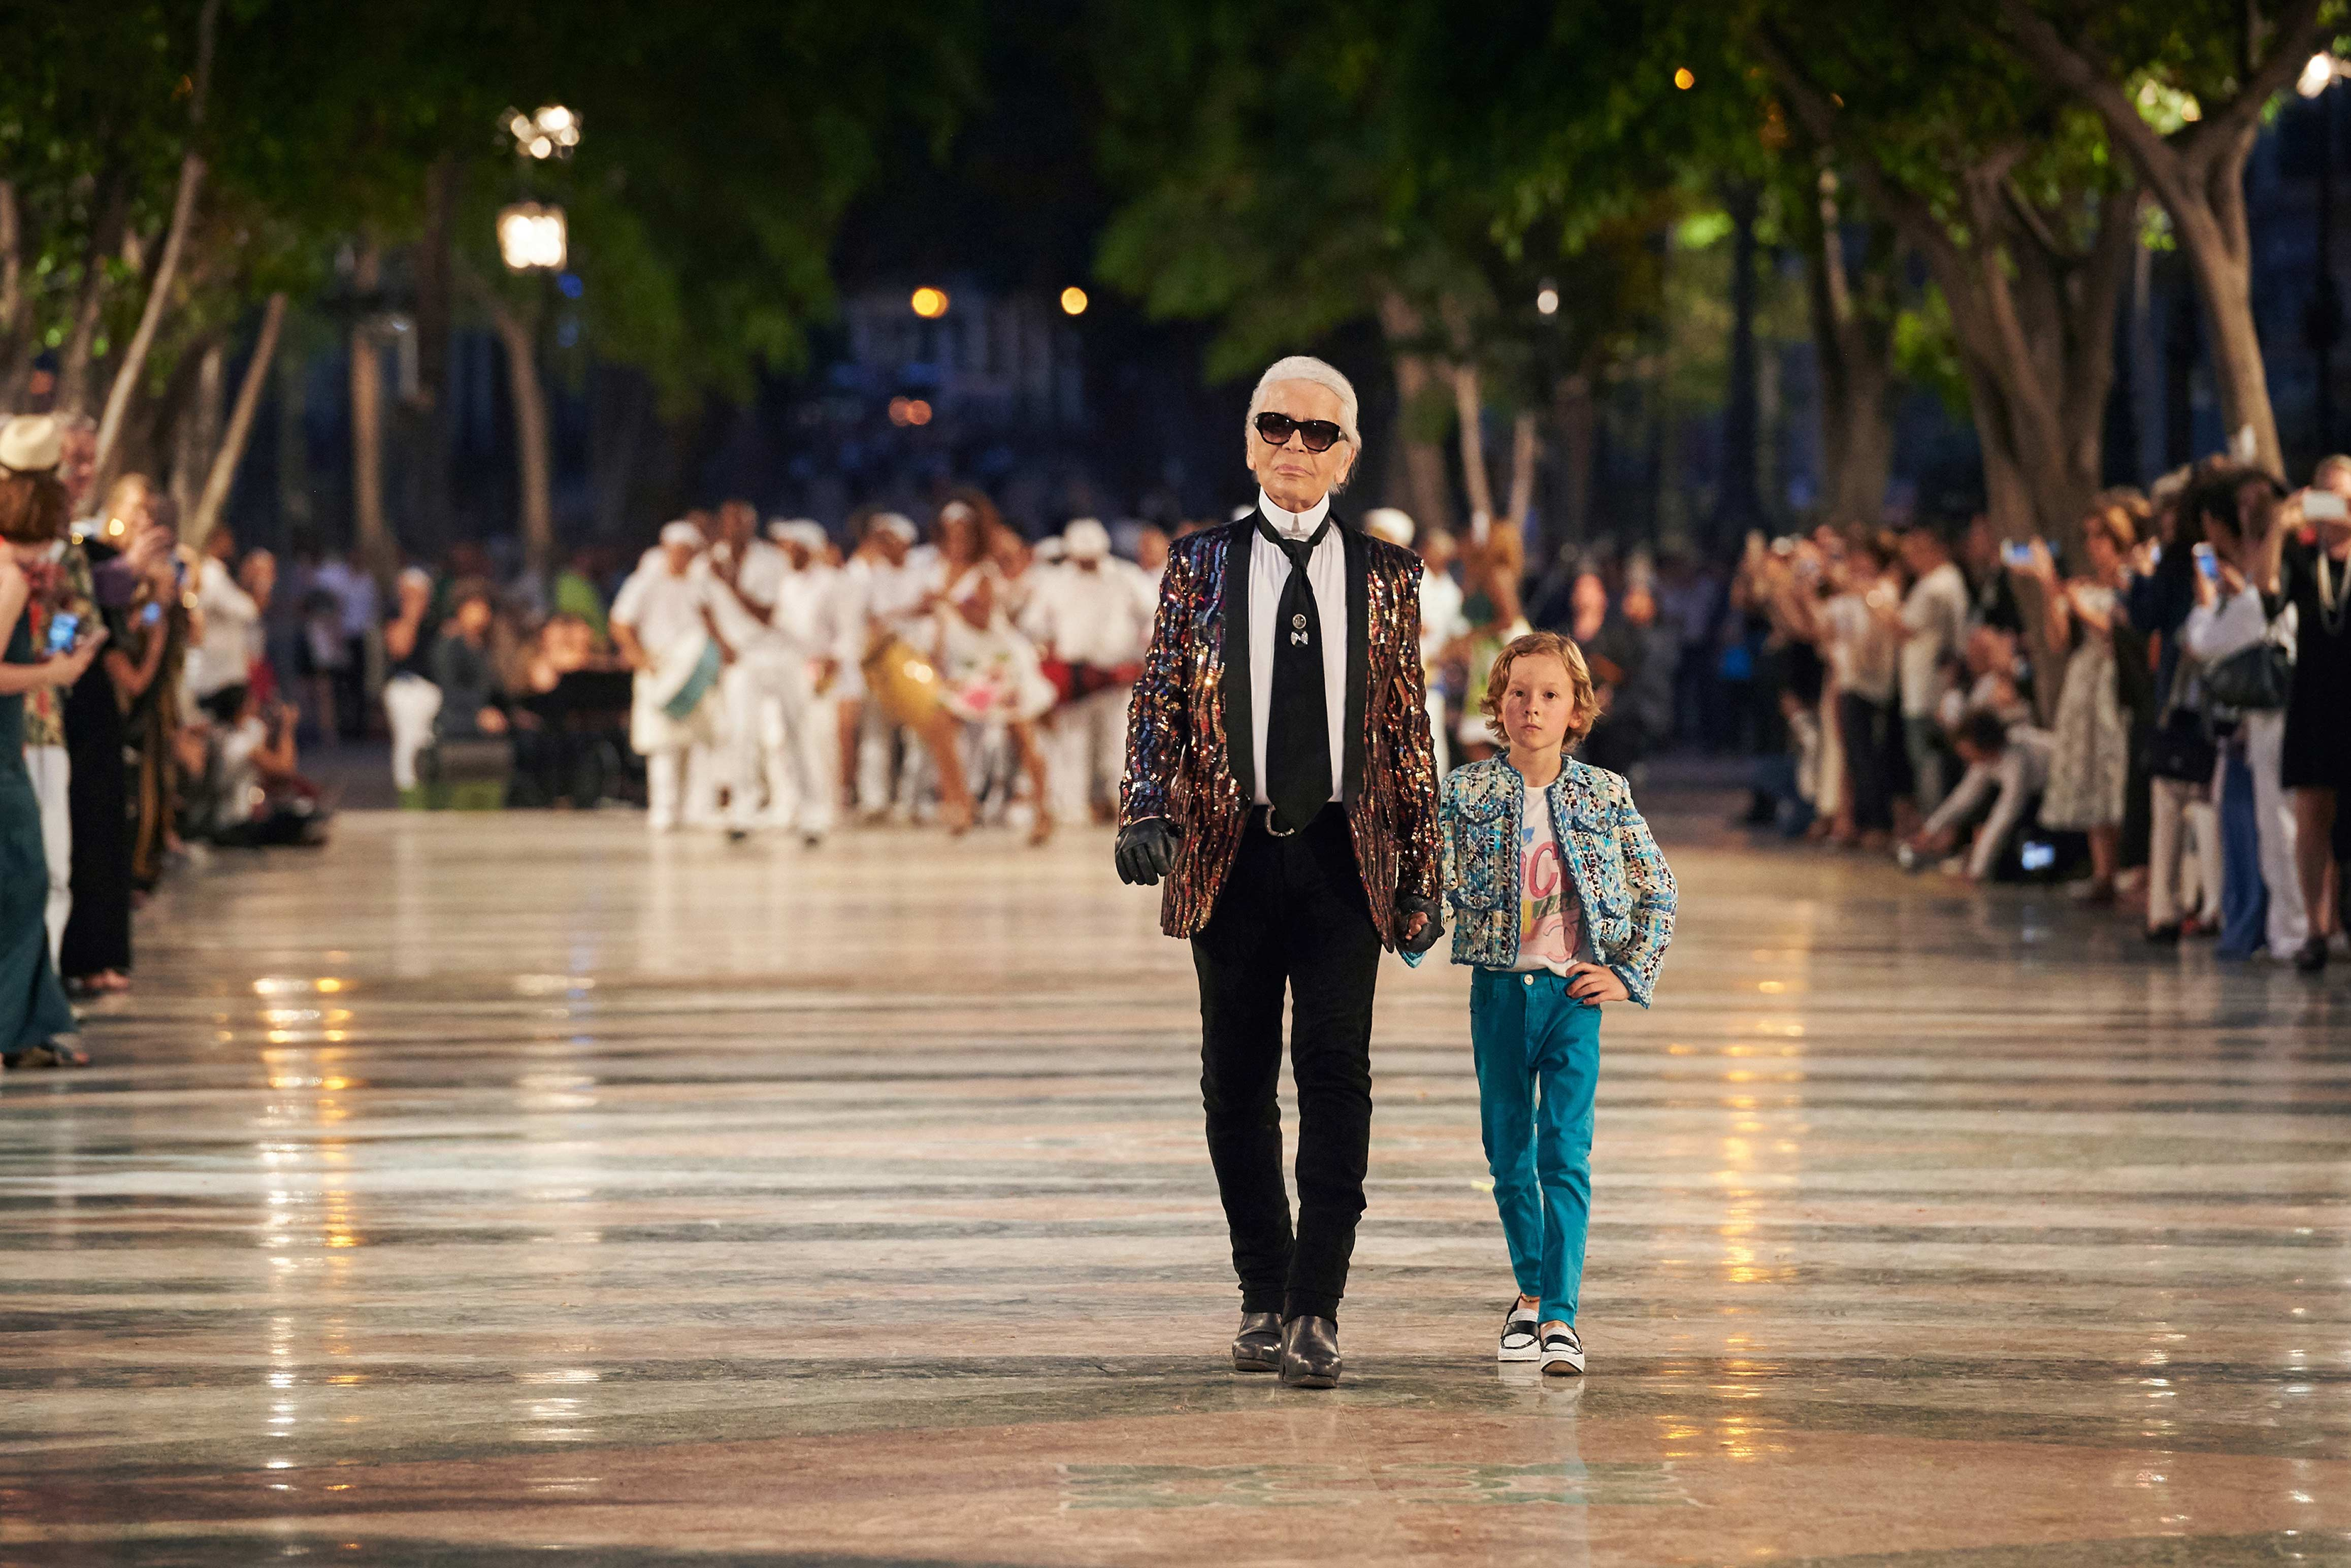 Karl Lagerfeld and Hudson Kroenig at the Chanel cruise 2017 show in Havana, Cuba